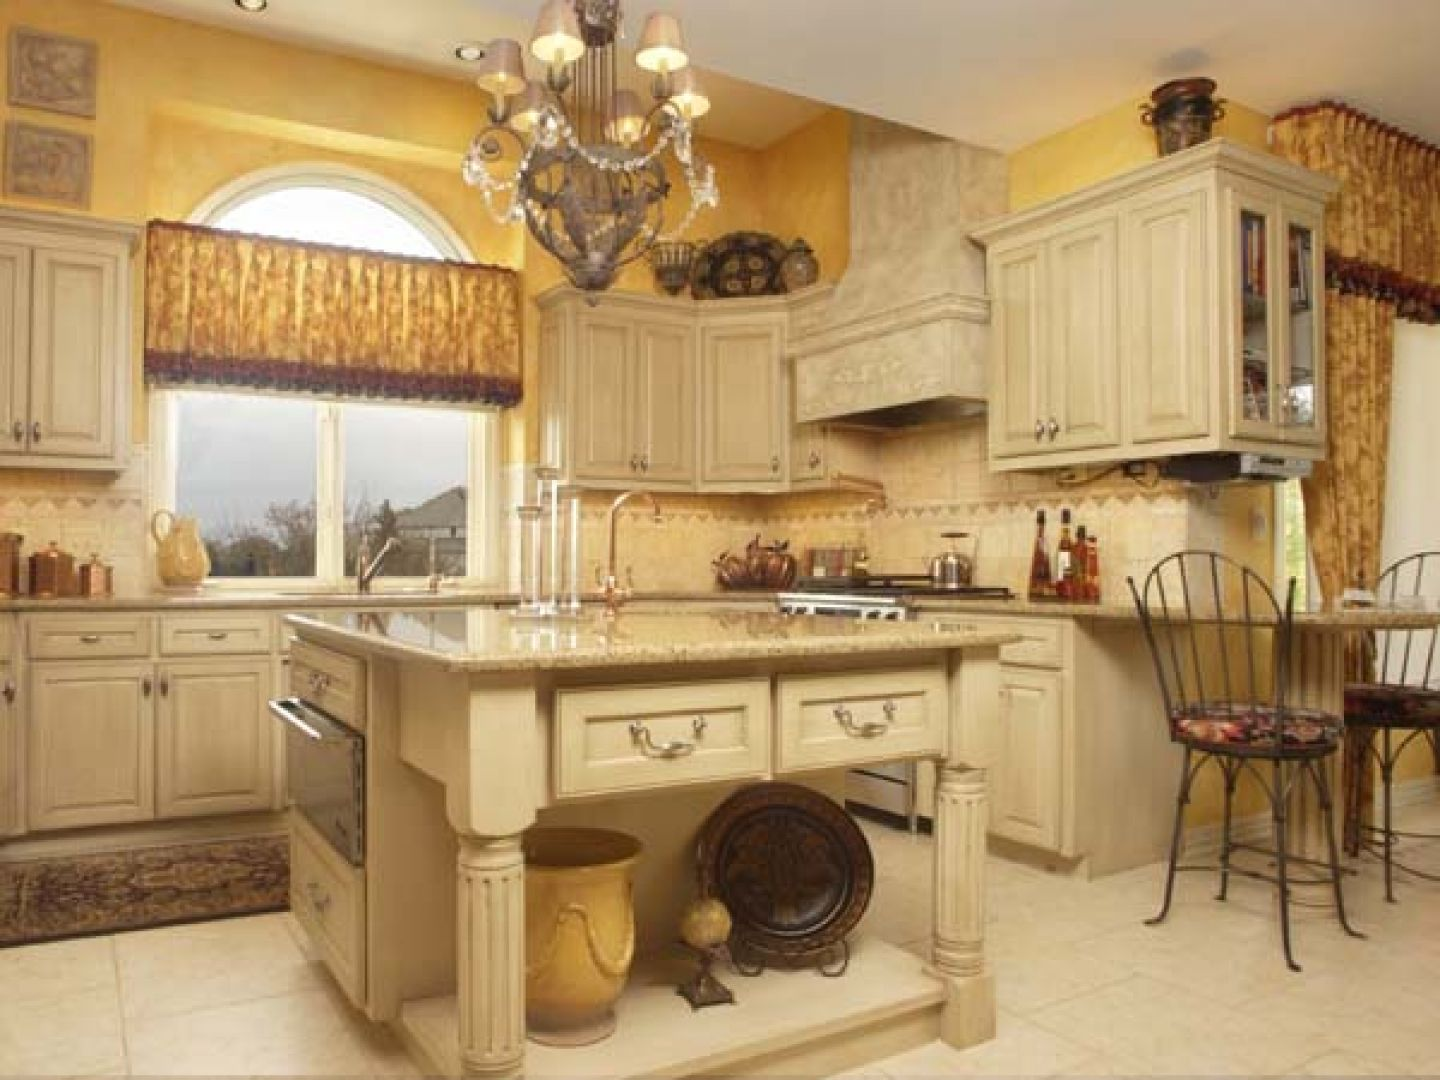 tuscany kitchen would change wall color with With kitchen colors with white cabinets with butterfly wall art outdoor